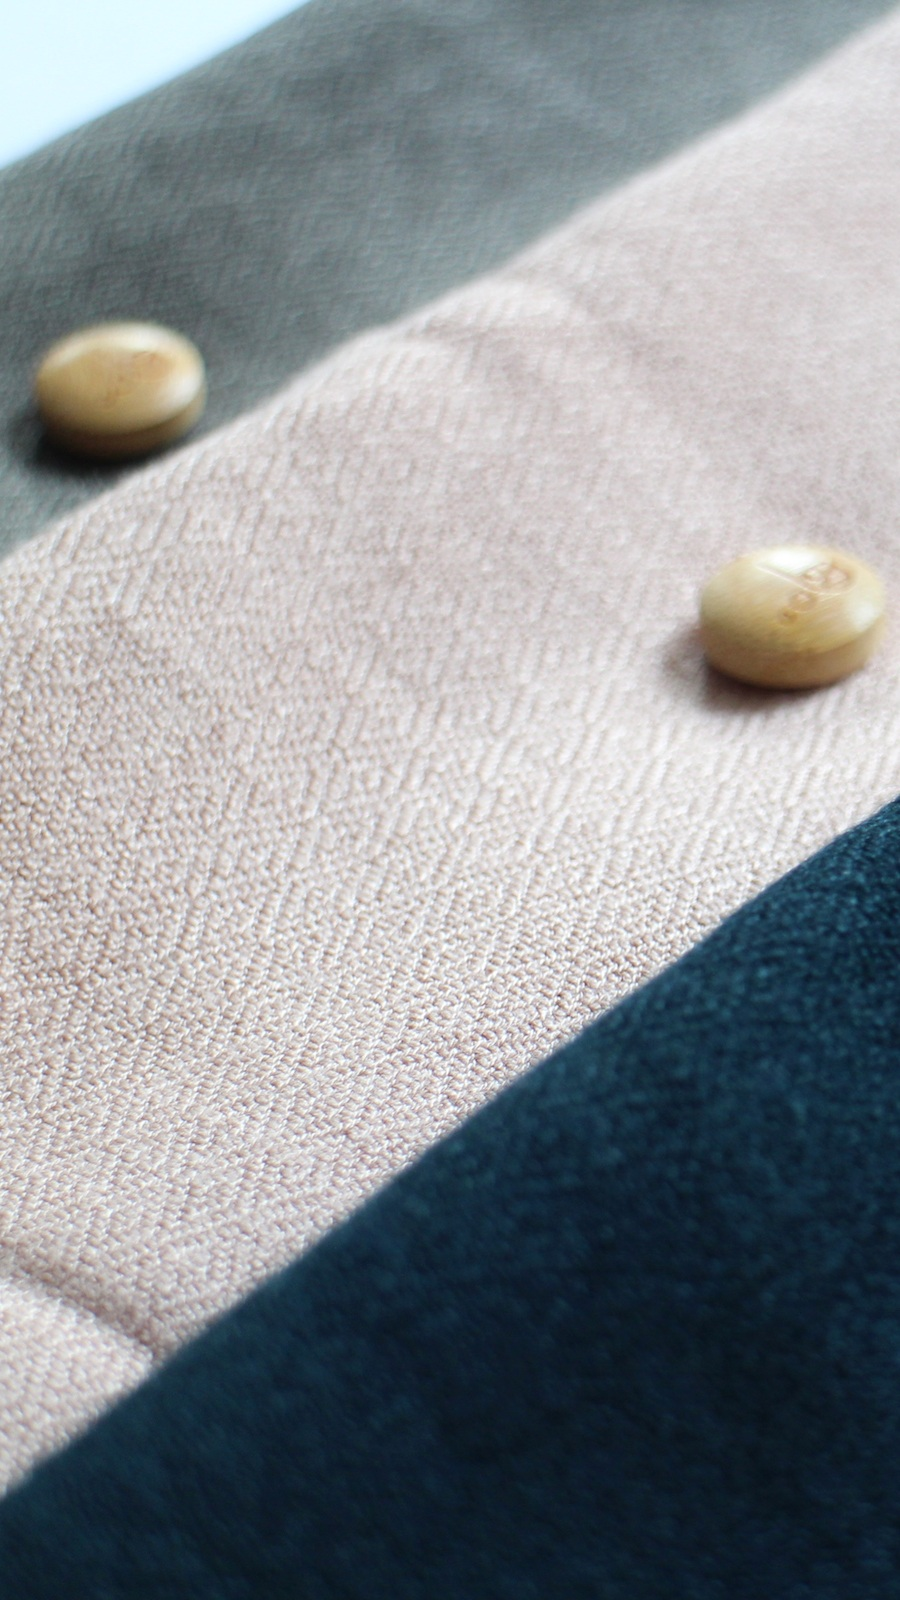 BAHINI - BAMBOO SCARVES WITHSOCIAL CAUSE